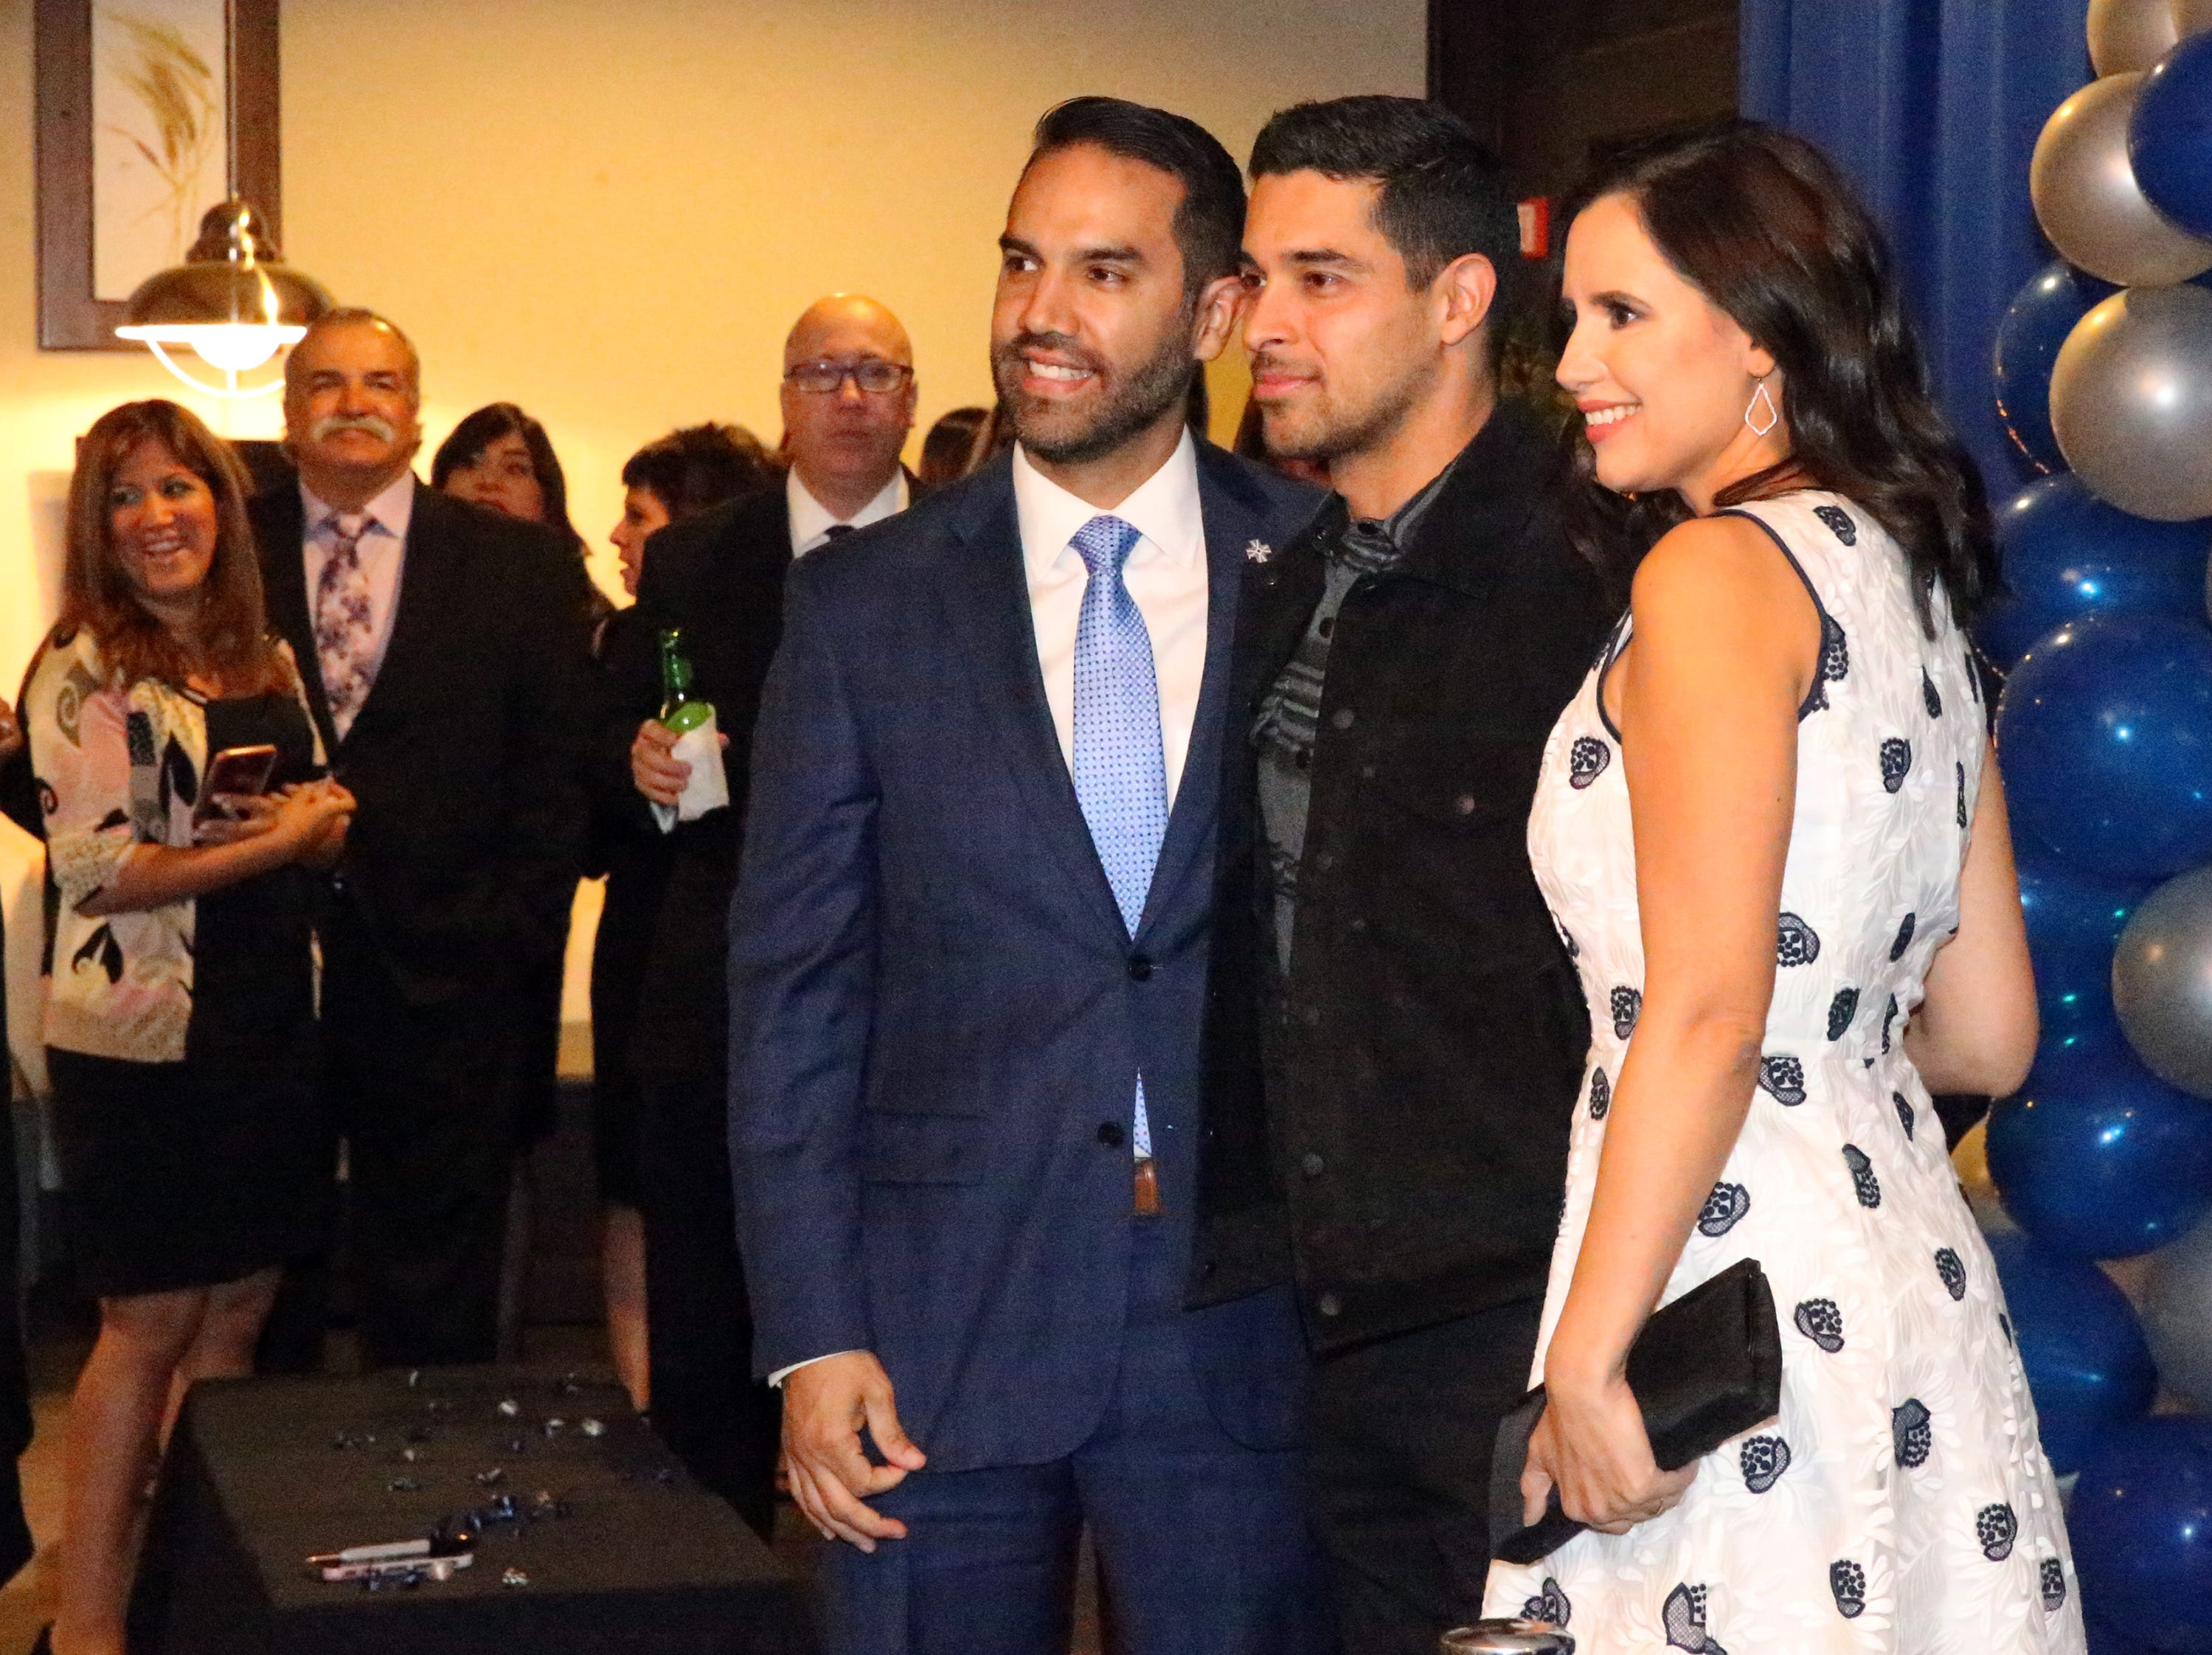 Actor/producer Wilmer Valderrama, center, poses with El Pasoans Nicholas and Elena Tejeda during a reception at the 28th El Paso Hispanic Chamber of Commerce annual Fiesta Celebration Saturday night at the Centennial Banquet and Conference Center at Fort Bliss.